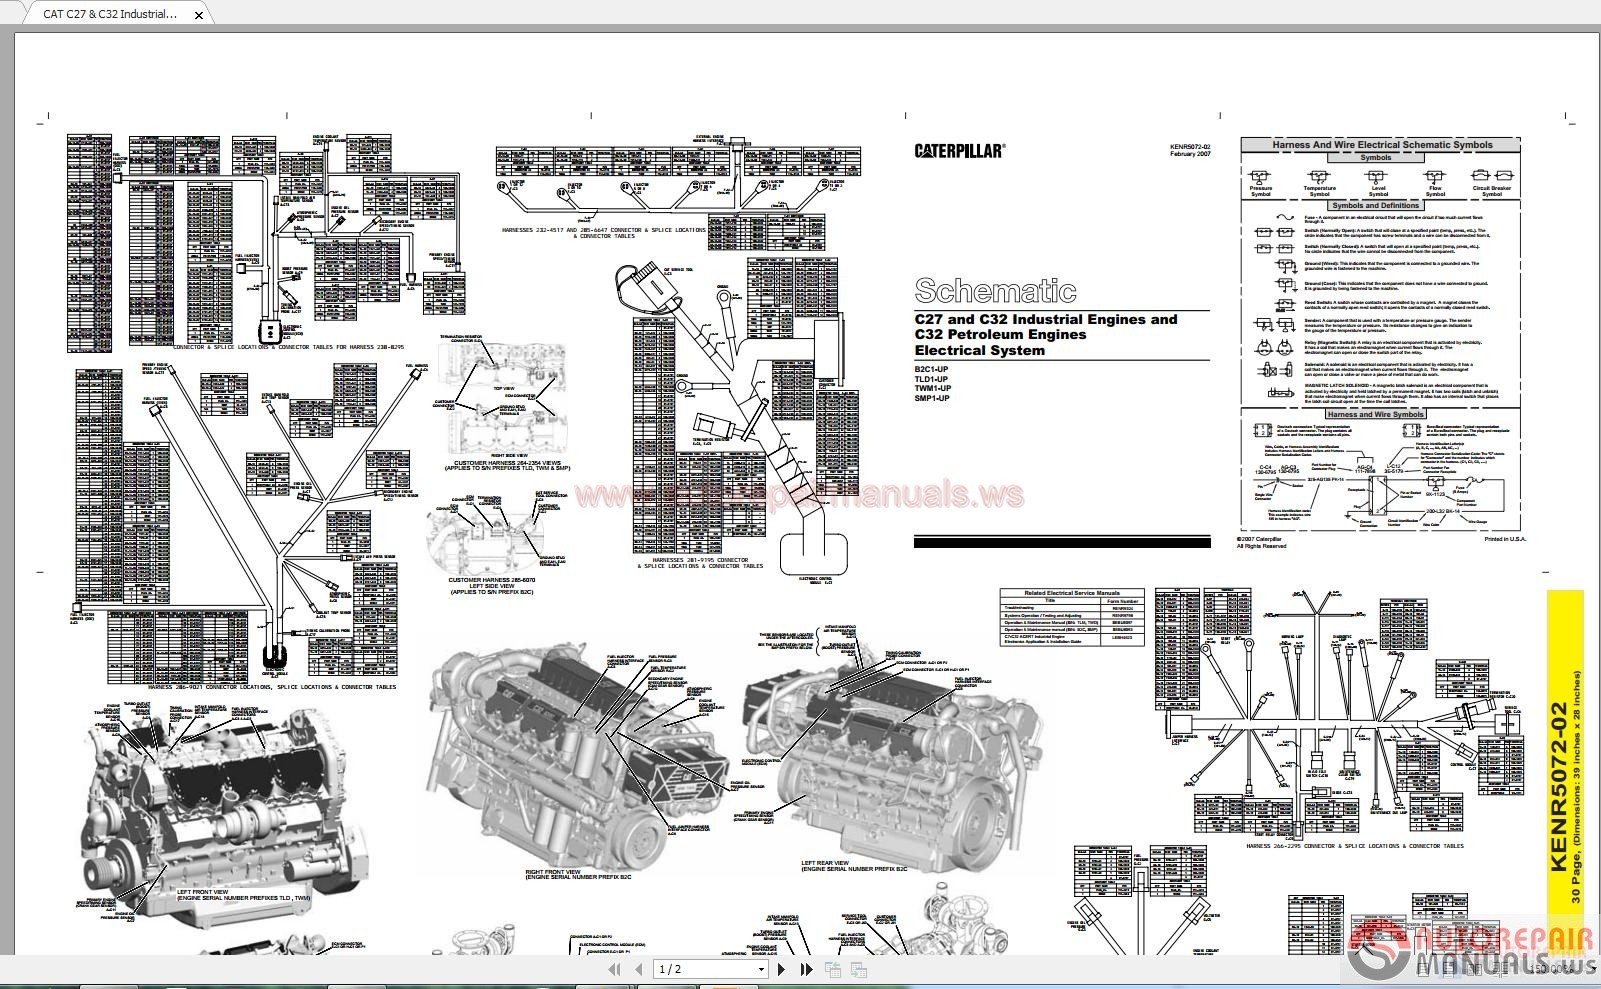 Cat c32 maintenance Manual